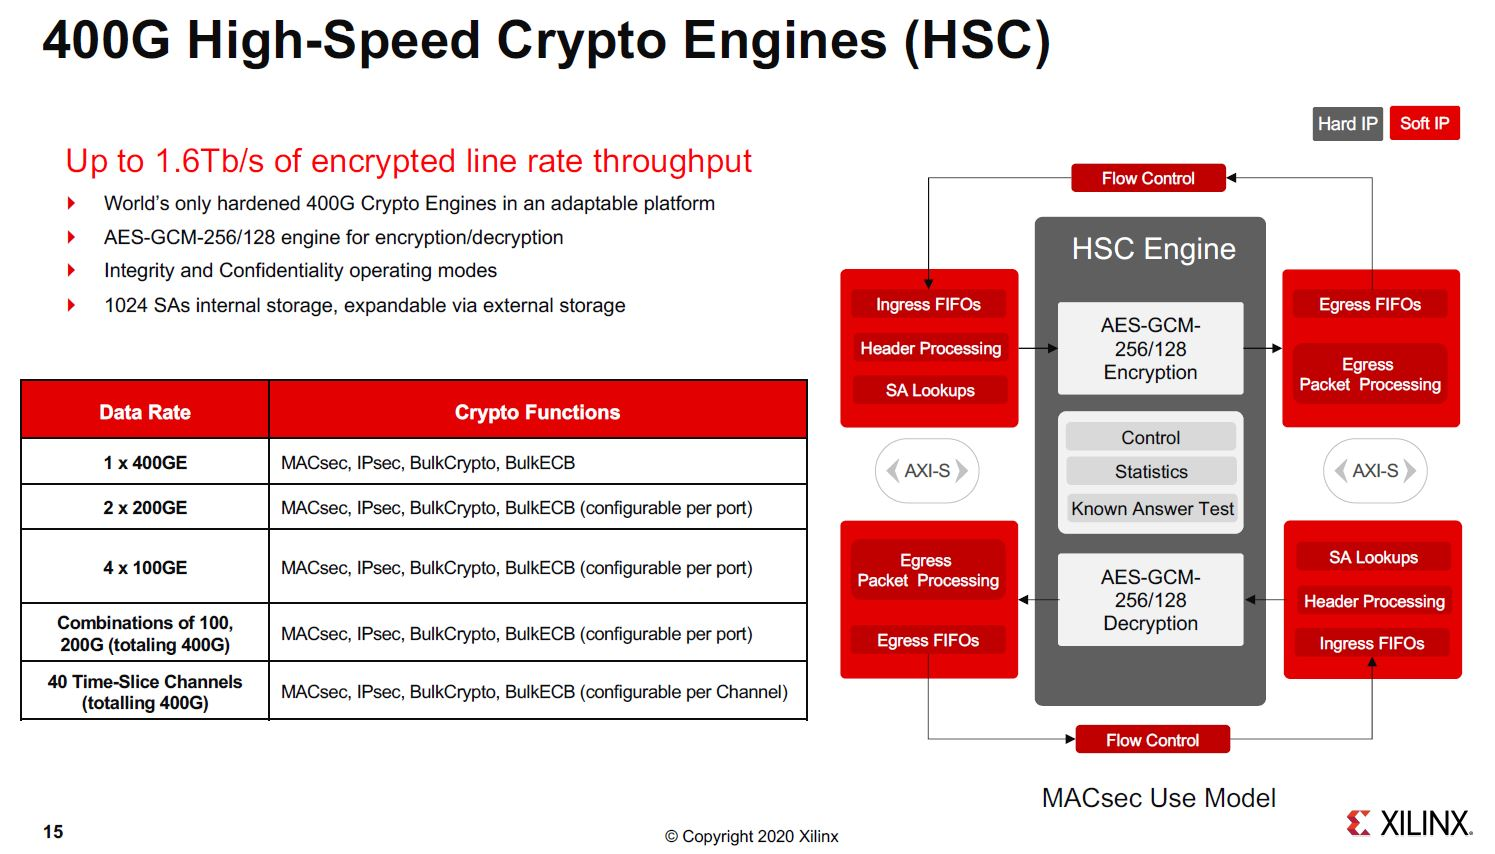 Xilinx Versal Premium 400G High Speed Crypto Engines HSC